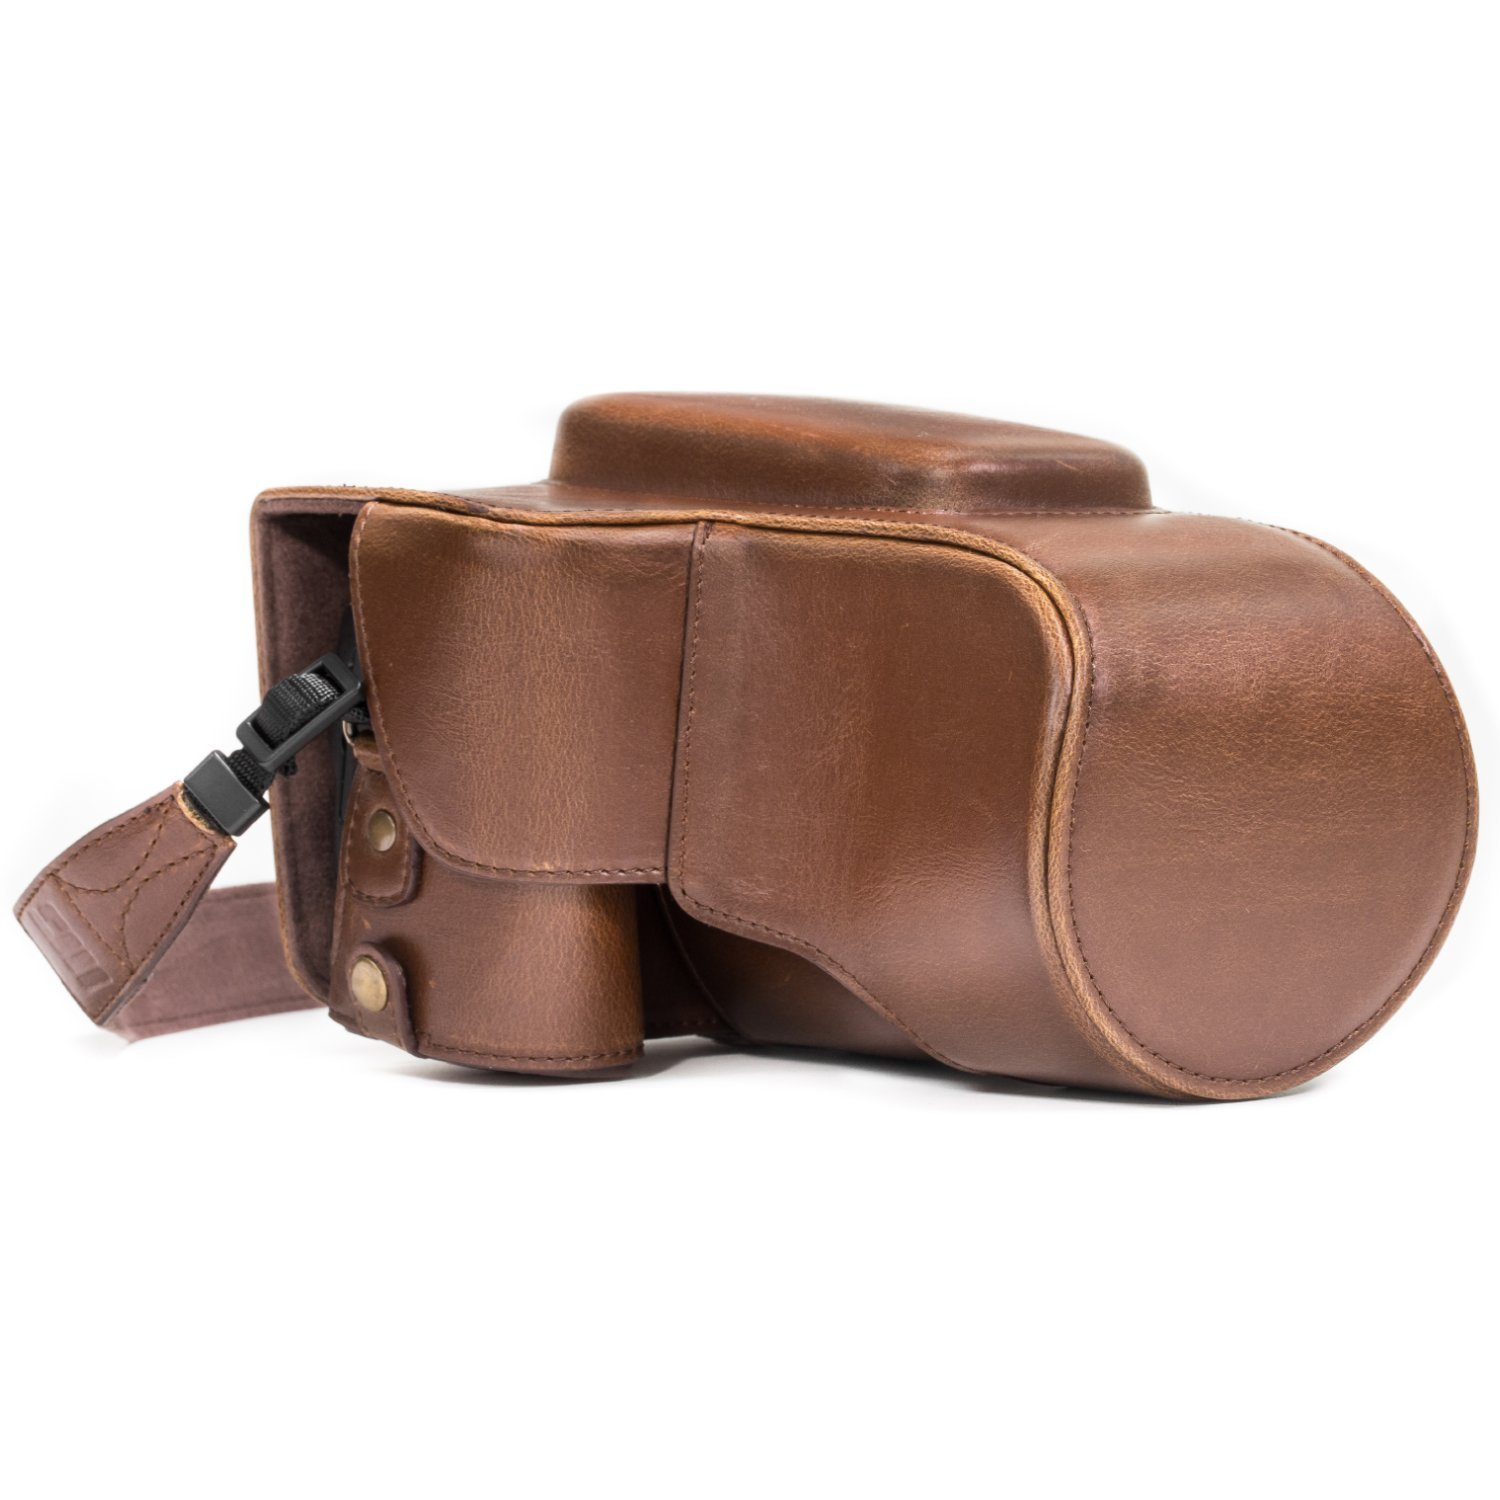 MegaGear Ever Ready Leather Camera Case Compatible with Nikon Coolpix P900, P900S